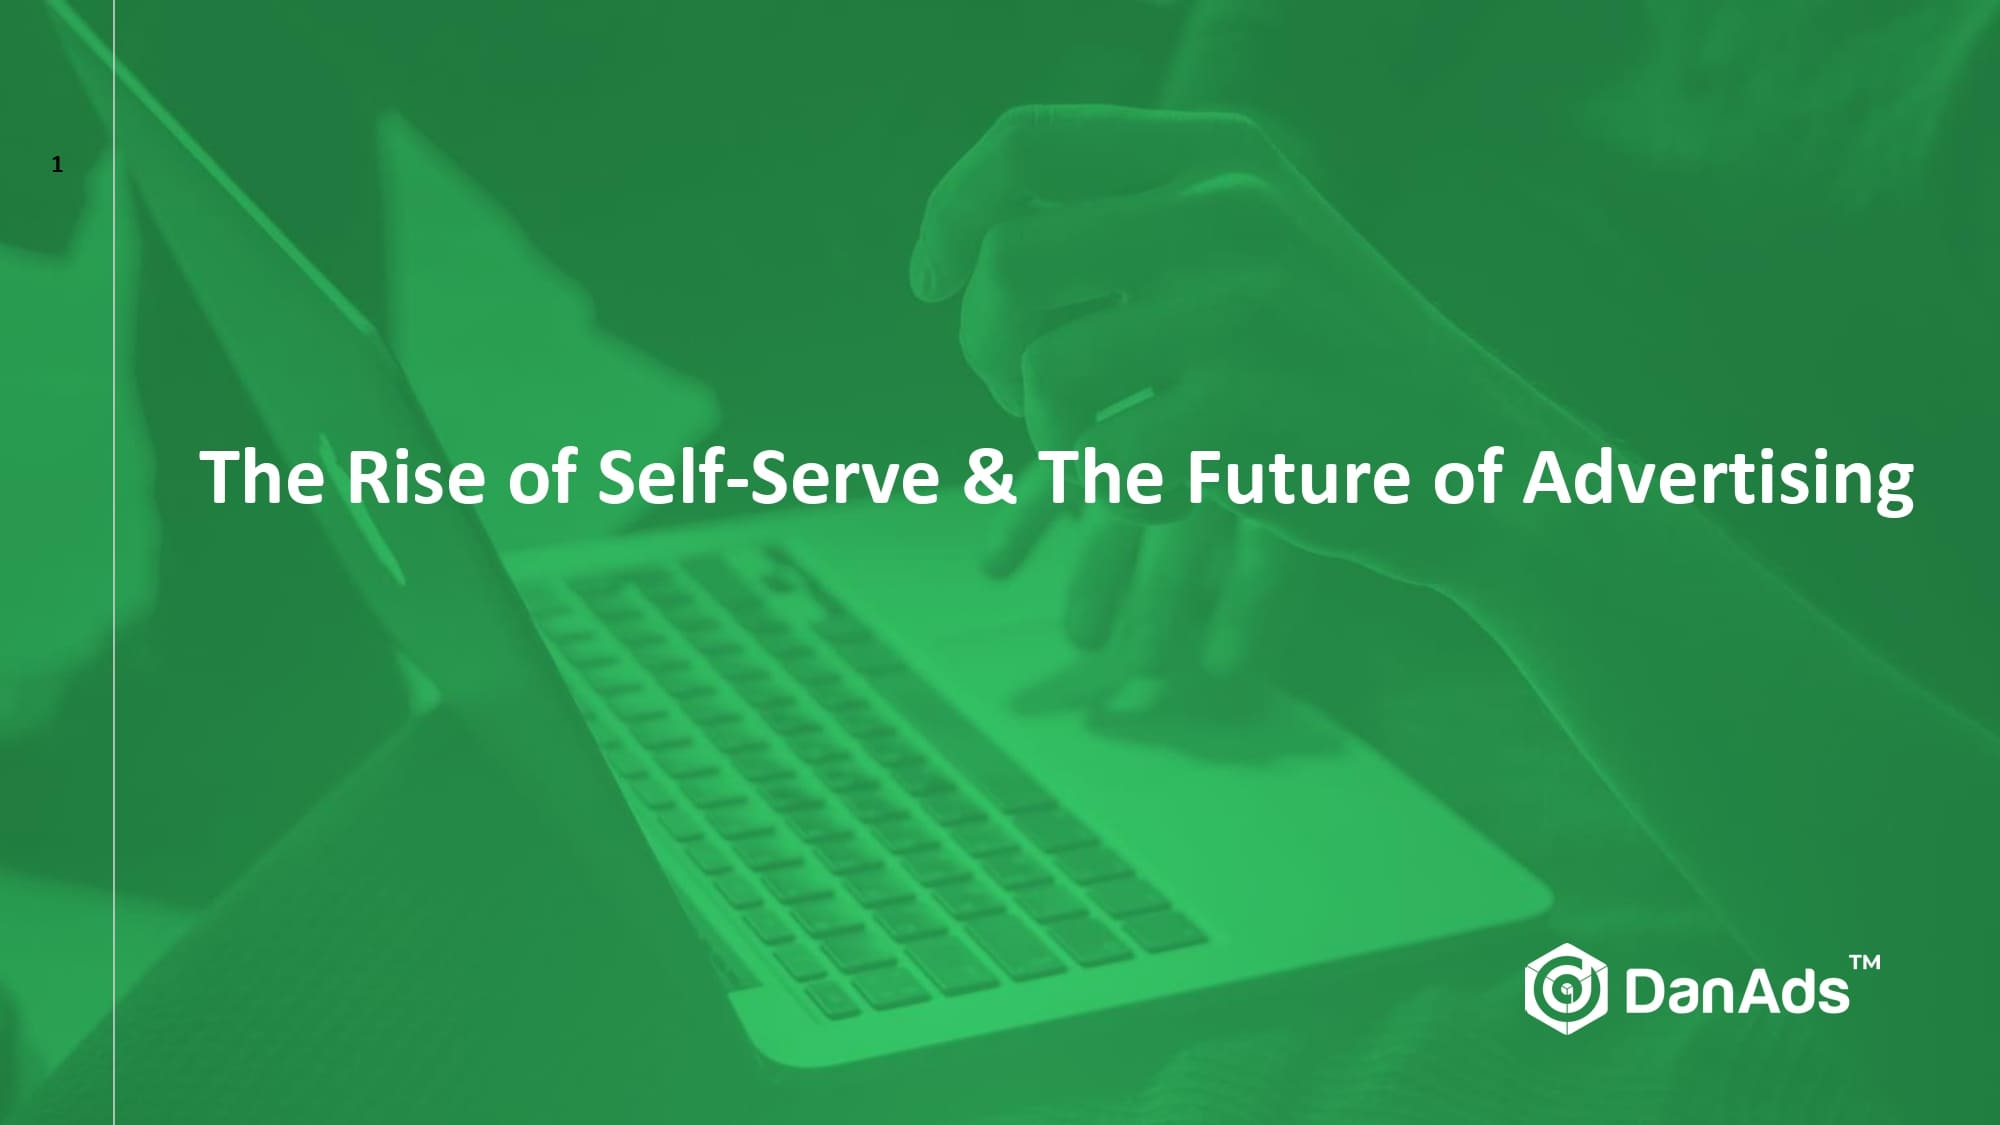 The Future of Advertising & the Rise of Self-Serve by Amanda Benachour of DanAds